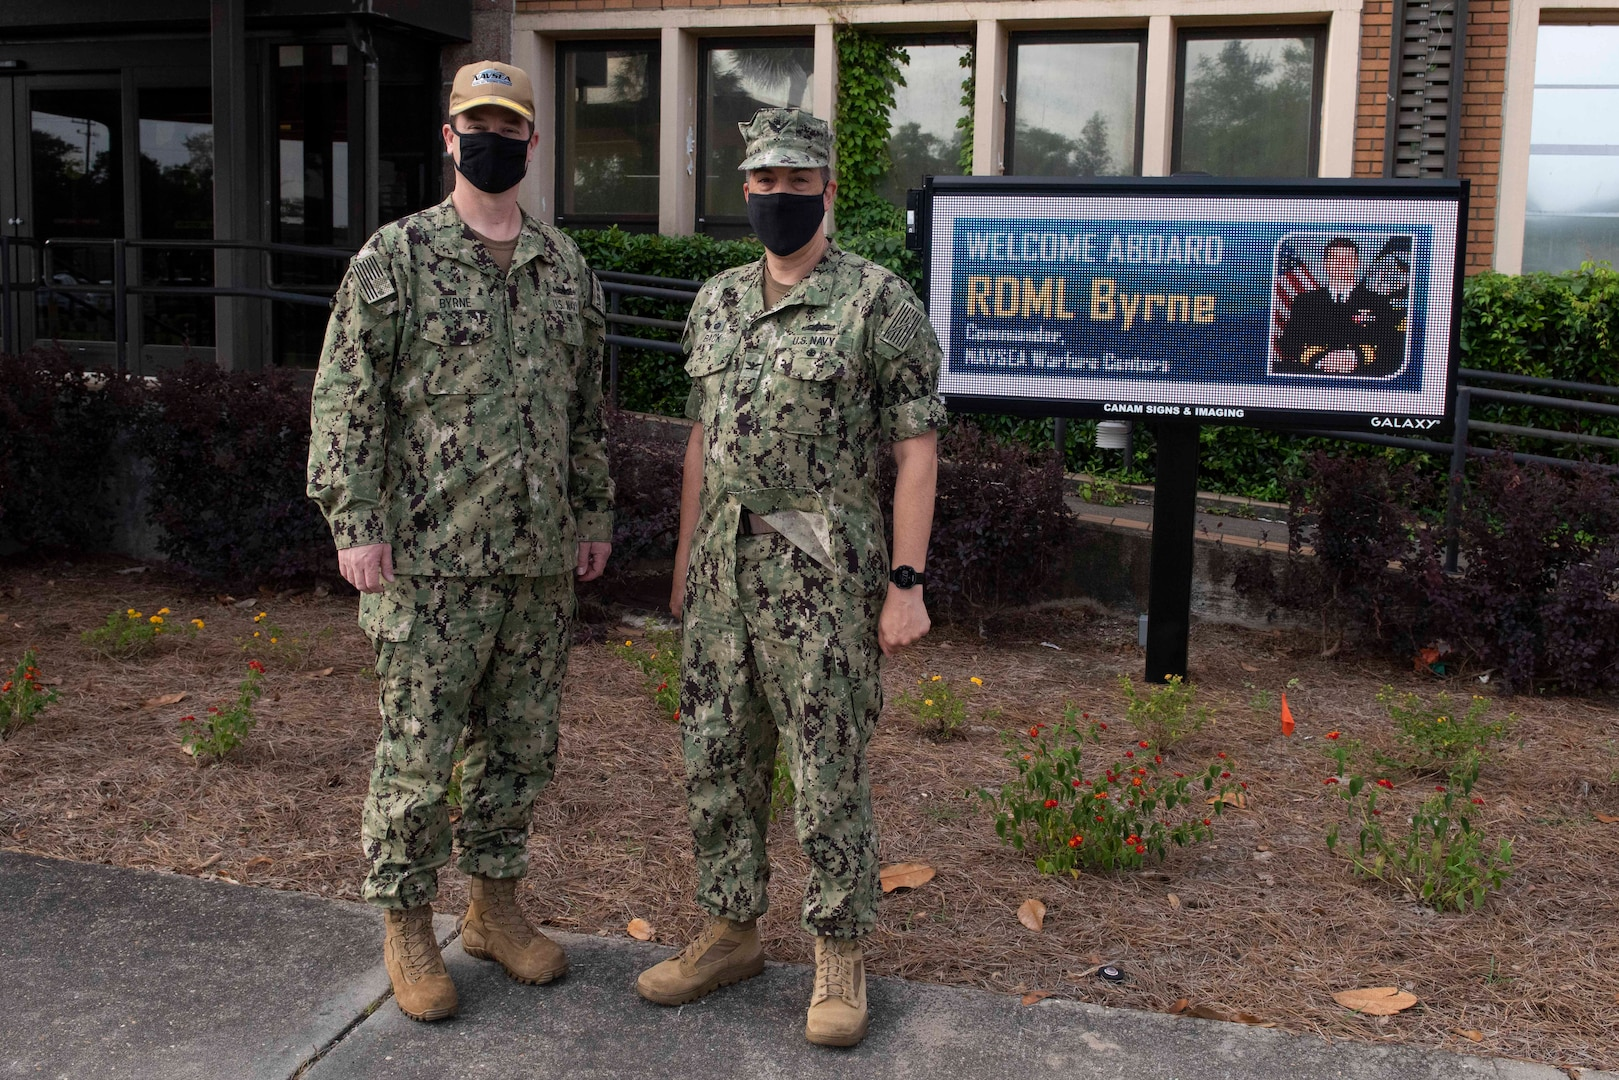 Rear Adm. Kevin Byrne, left, commander of the Naval Sea Systems Command (NAVSEA) Warfare Centers, visited Naval Surface Warfare Center Panama City Division May 18 to learn how the command is expanding the advantage by developing technical capabilities to meet emerging needs.